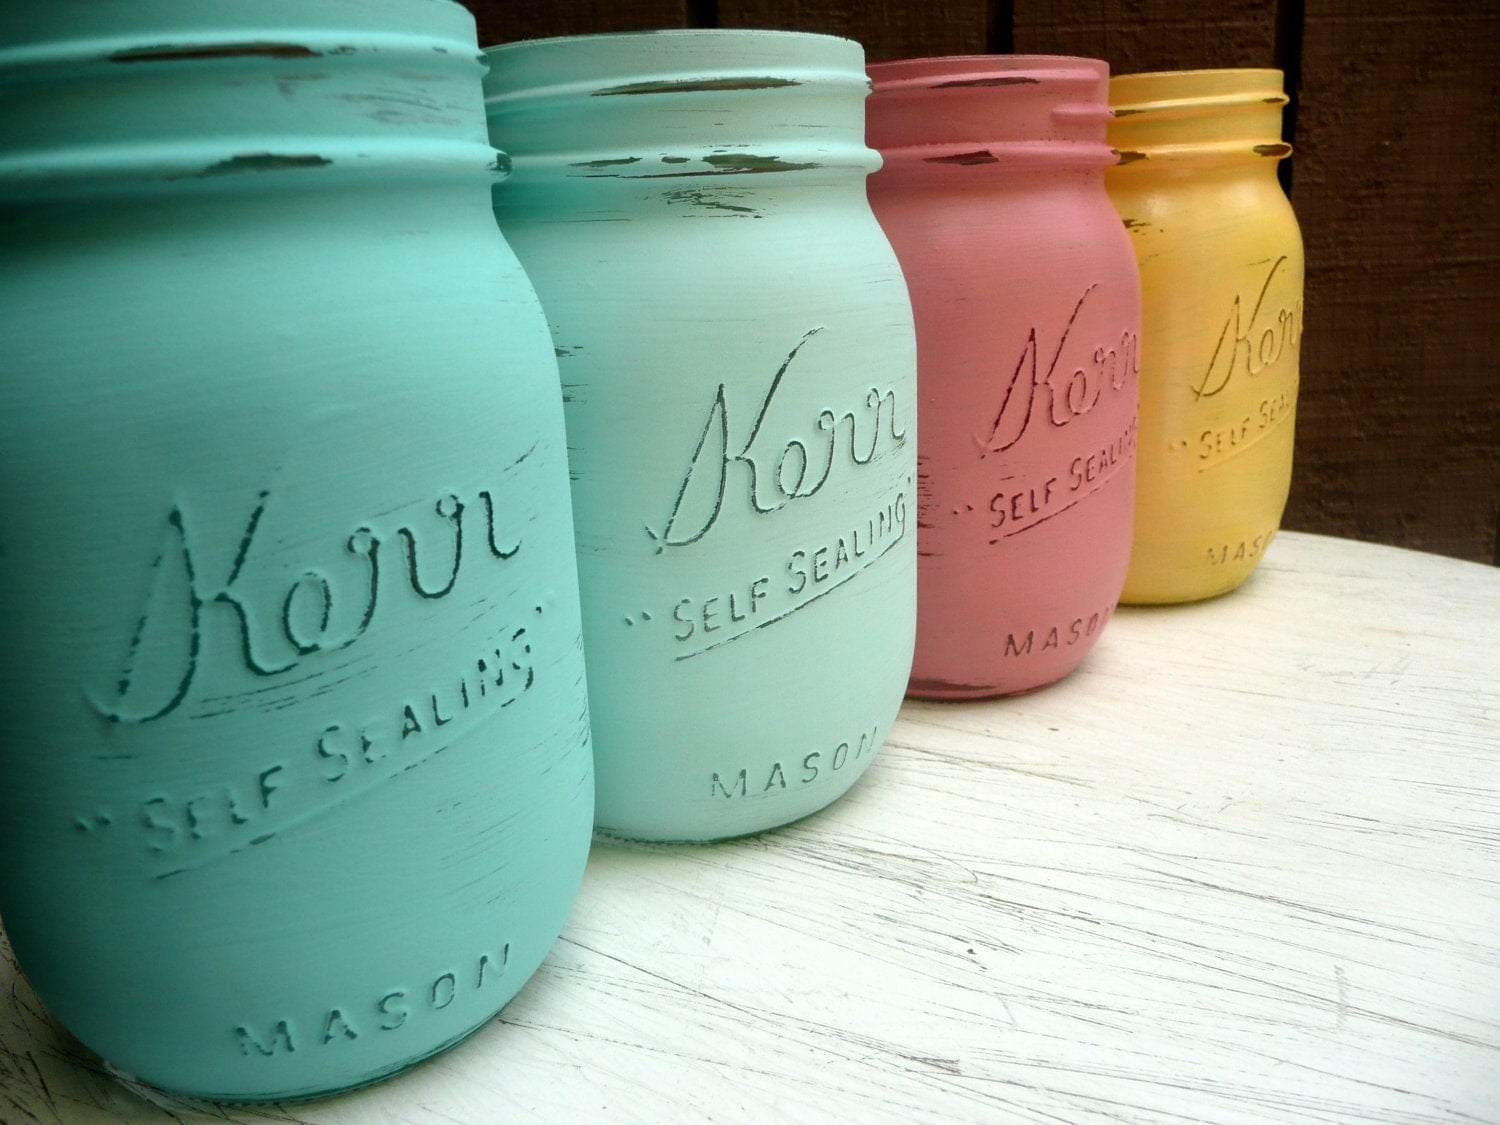 As seen on WeddingChicks.com - SPRING WEDDING and Home Decor - Painted Mason Jars - Vase - Miami Pint - BeachBlues